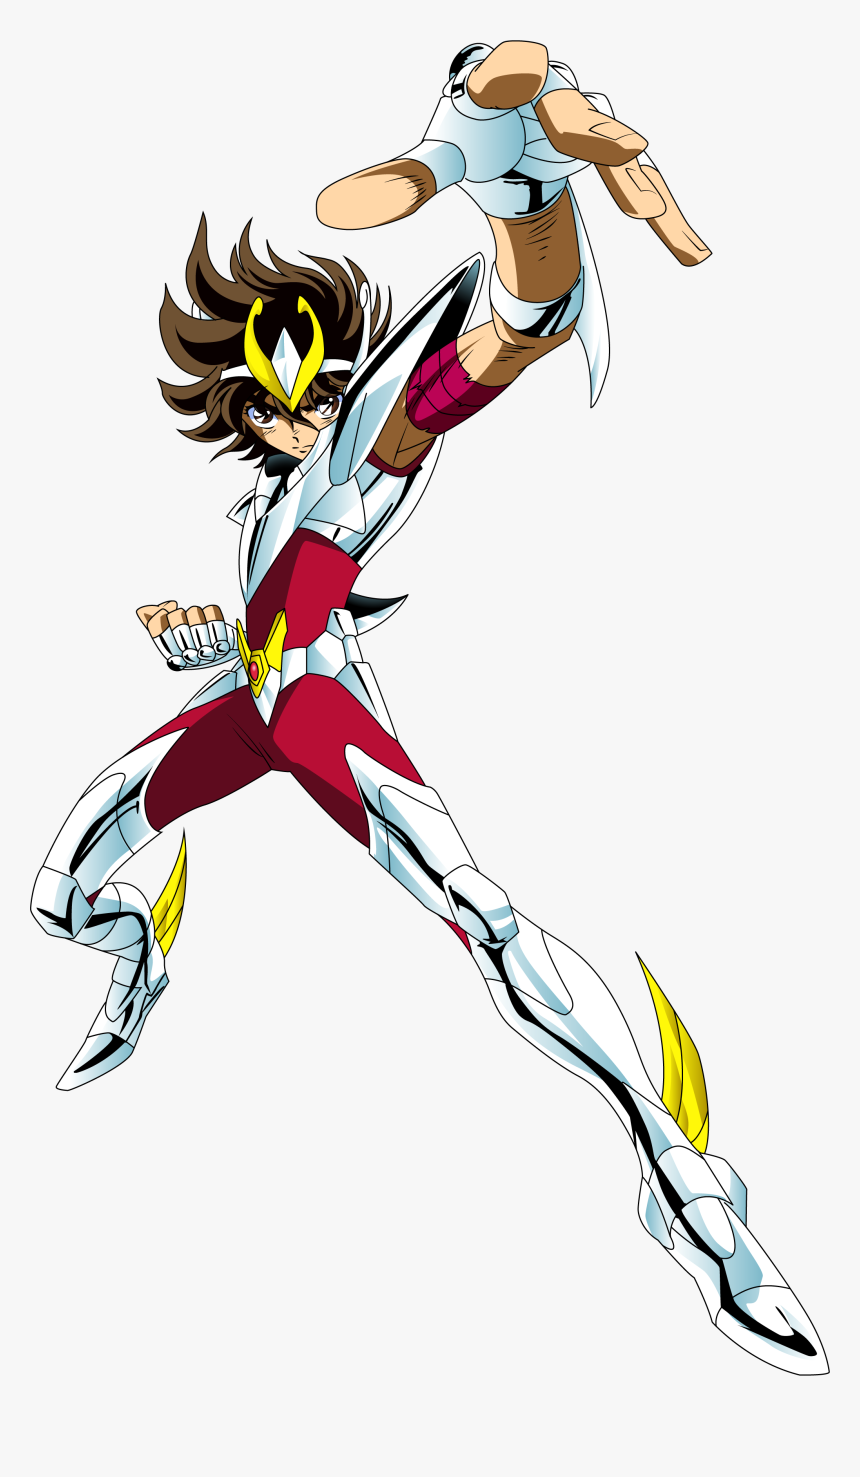 Transparent Seiya Png - Saint Seiya Png, Png Download, Free Download